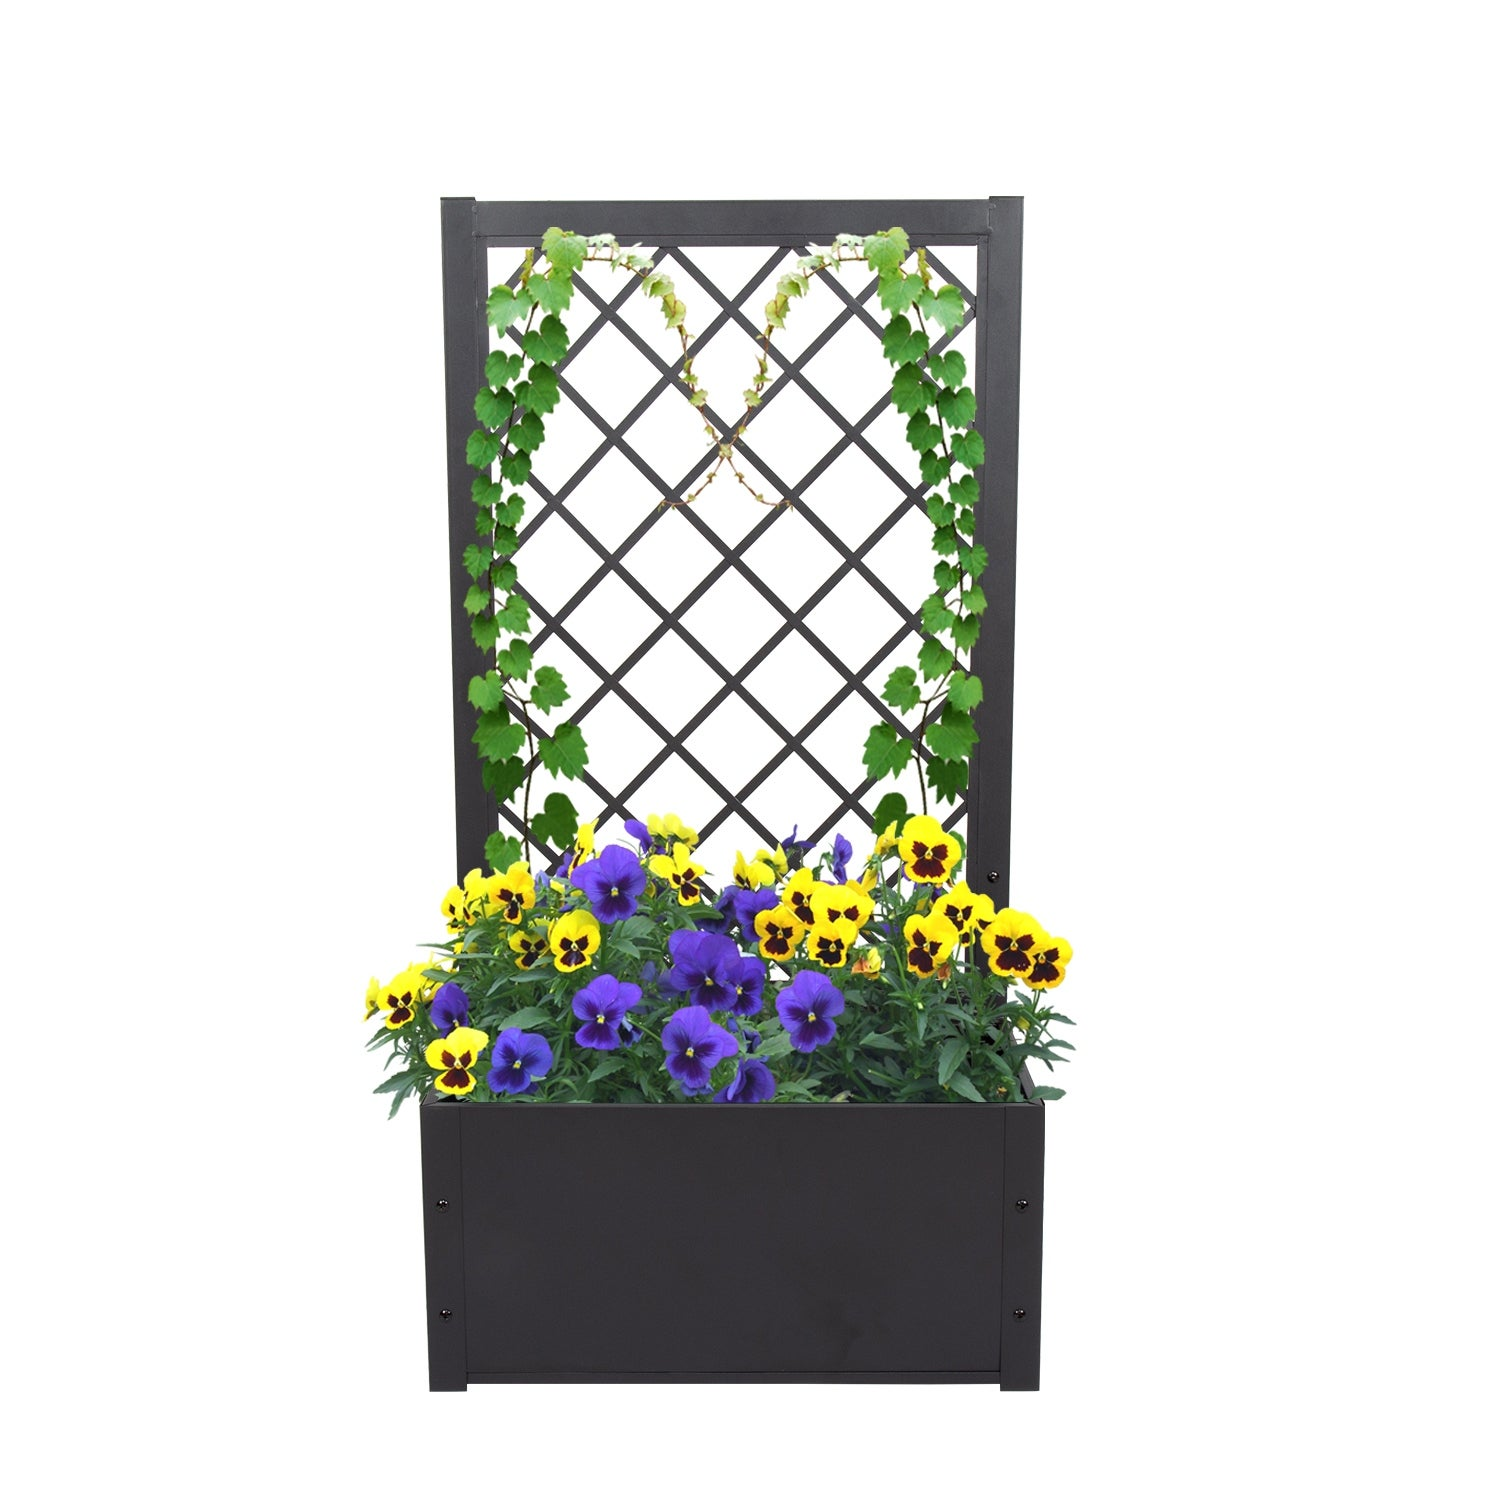 Shop Kinbor Metal Raised Bed With Trellis Elevated Garden Planter Box For Yard Patio Free Standing Outdoor Container Bed Overstock 31677550